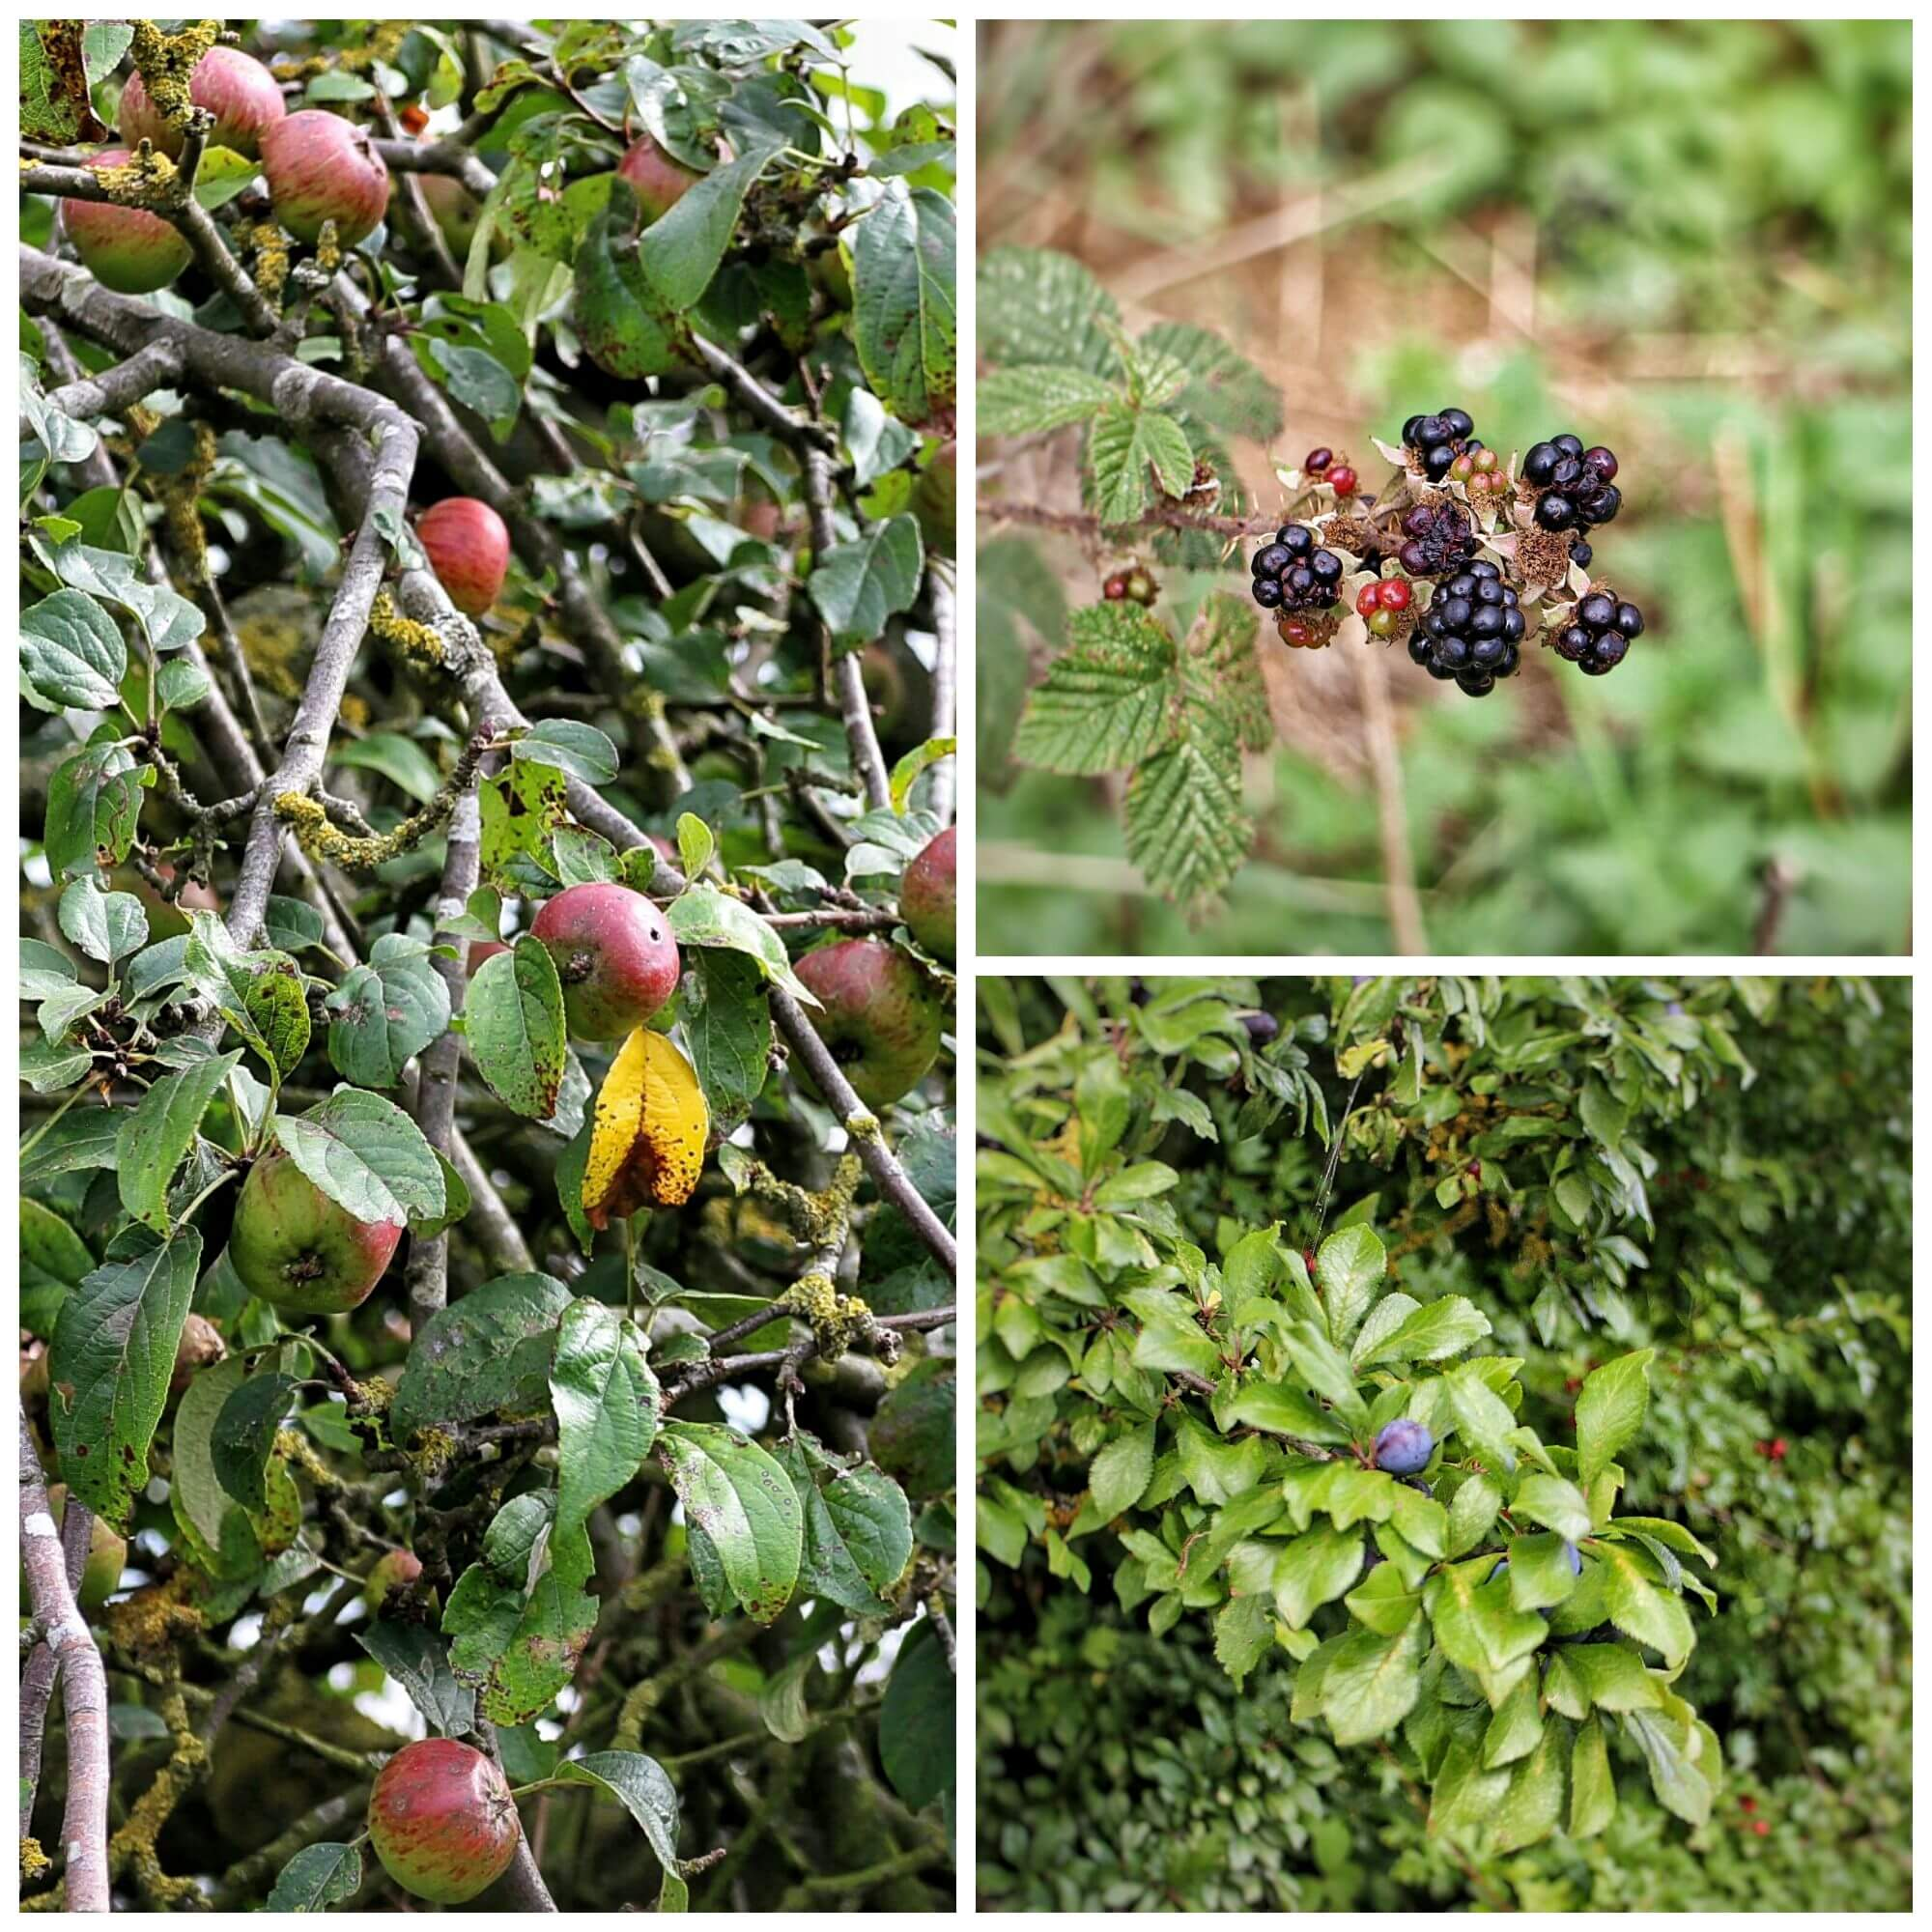 I headed out this week and managed to find blackberries, plums, sloes and apples